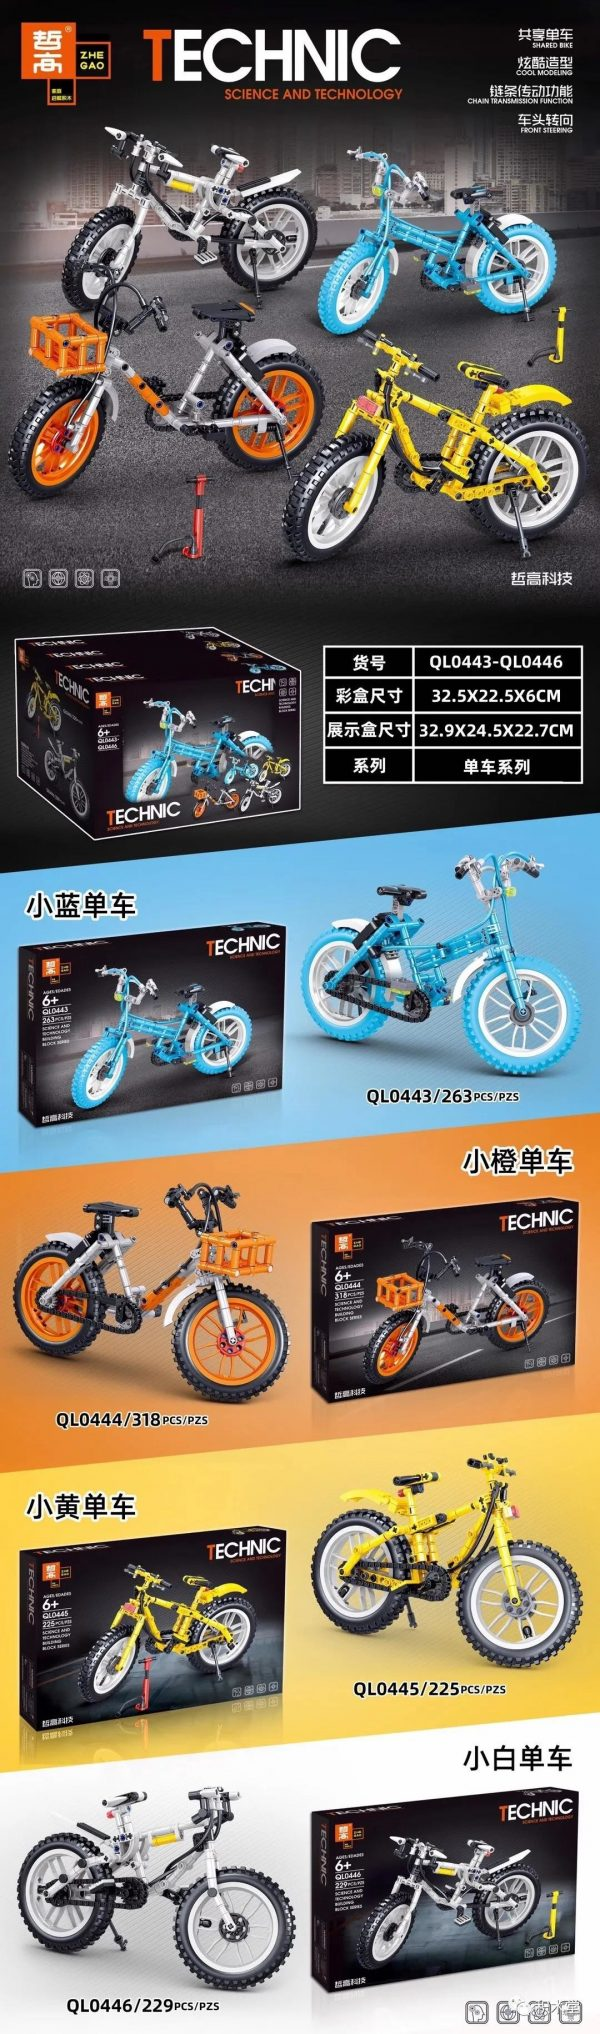 ZHEGAO QL0446 Shared bicycles 4 types of small blue bicycles, small orange bicycles, small yellow bicycles, and small white bicycles 0